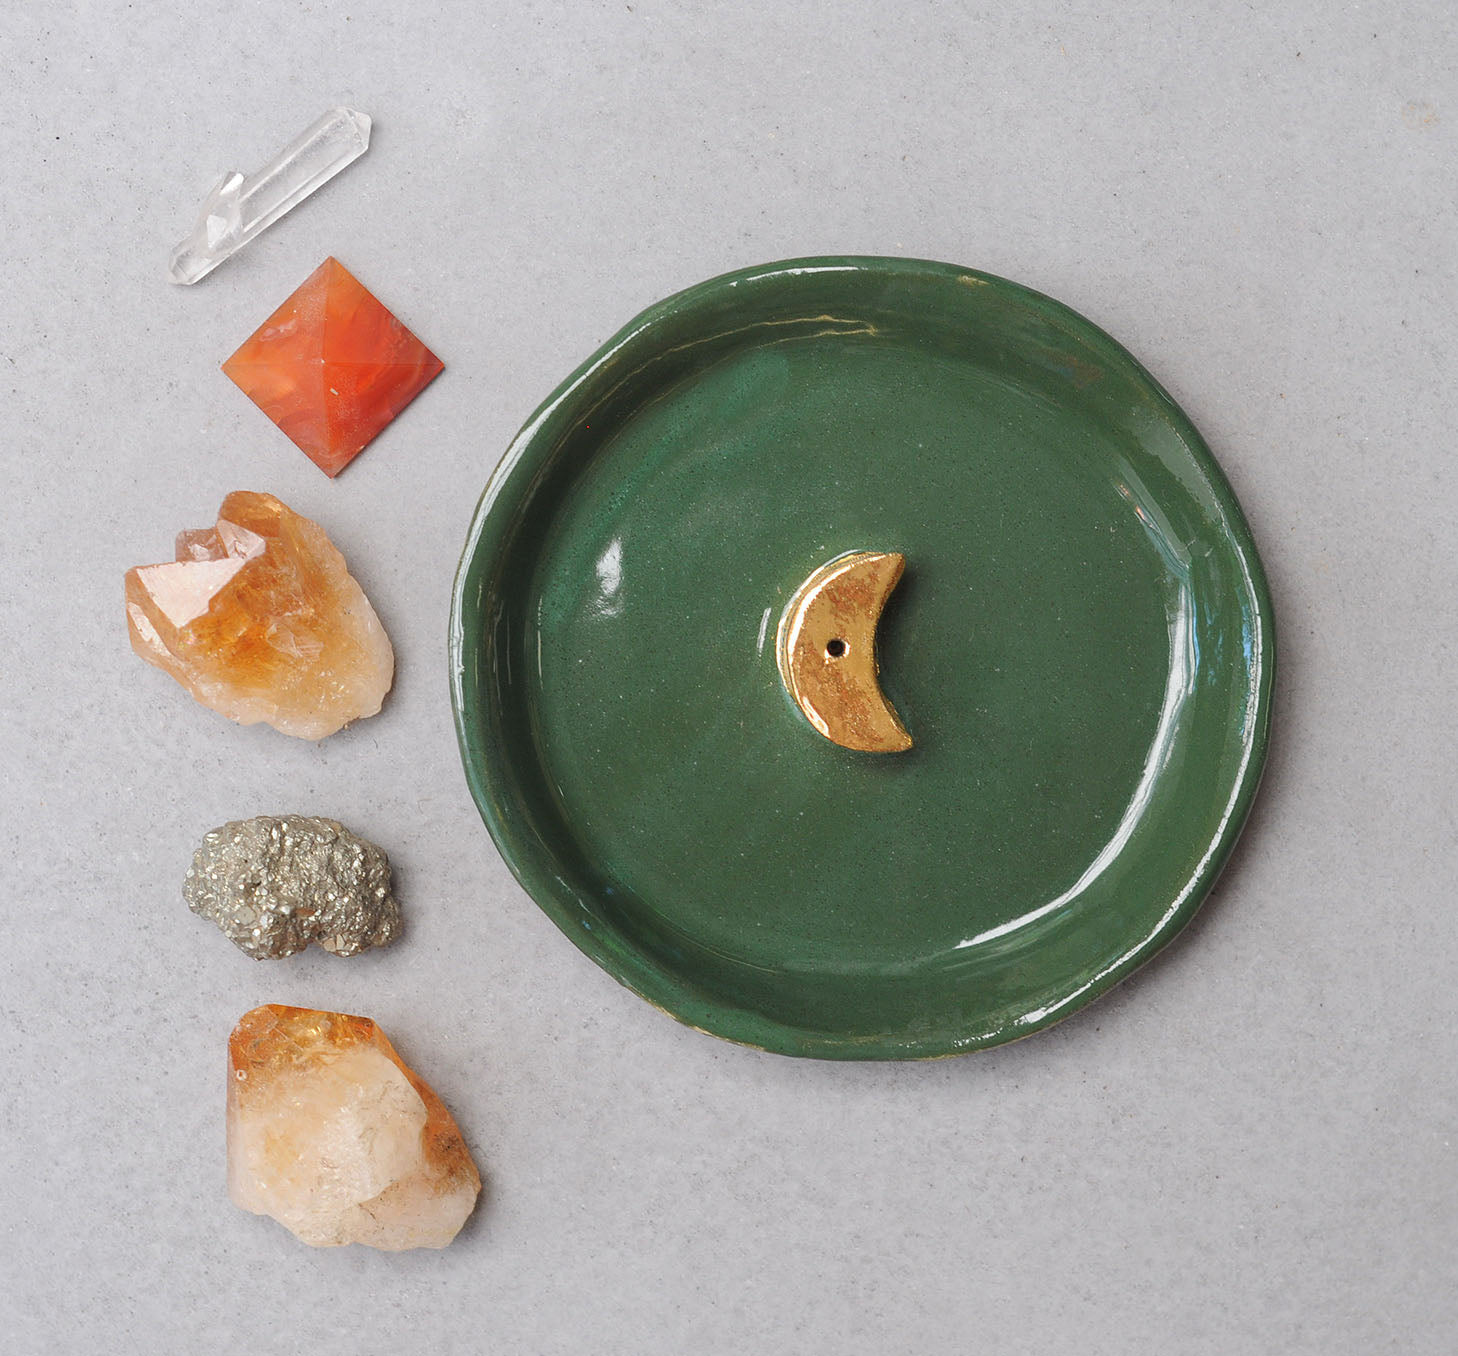 GOLD MOON INCENSE HOLDER - GREEN GLAZE - WHITE CLAY